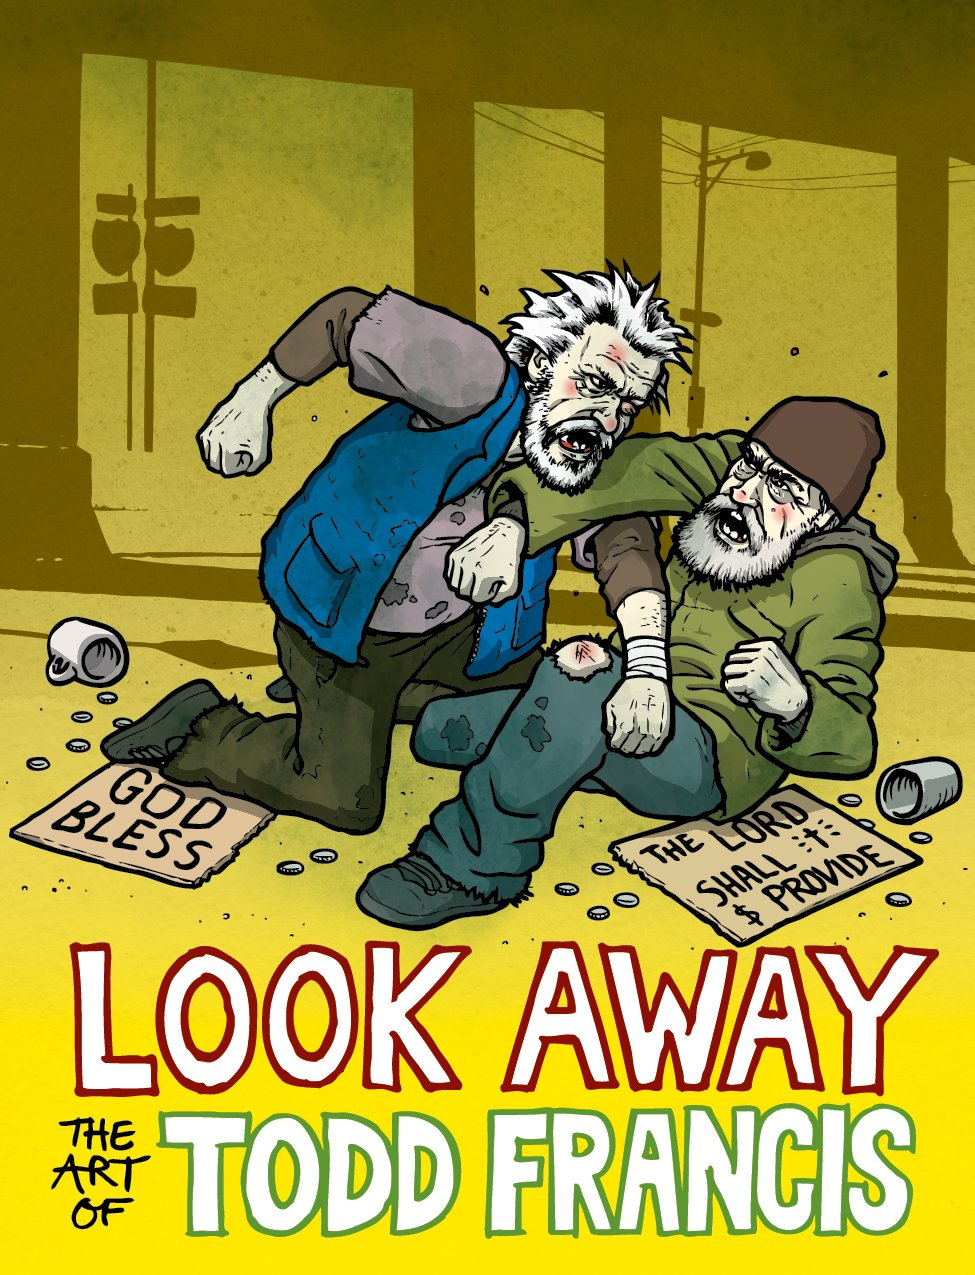 LOOK AWAY: The Art of Todd Francis pdf